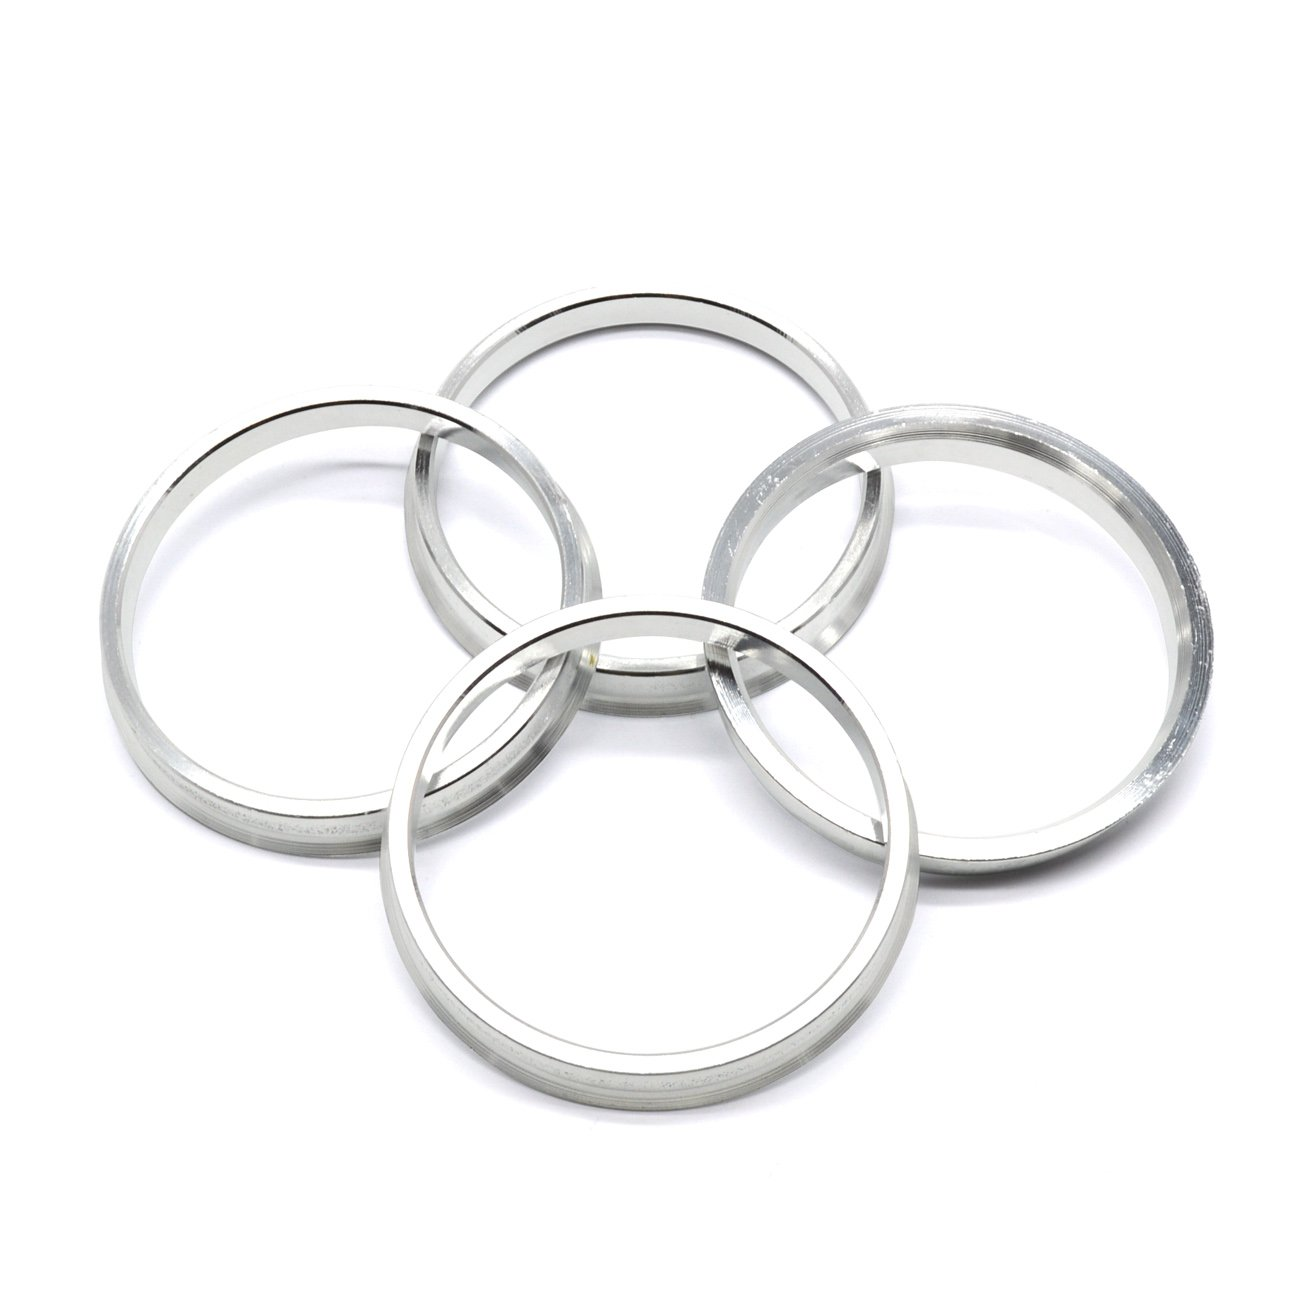 GoldenSunny 73.1mm OD to 66.1mm ID Silver Aluminum Hub Centric Rings - Pack of 4